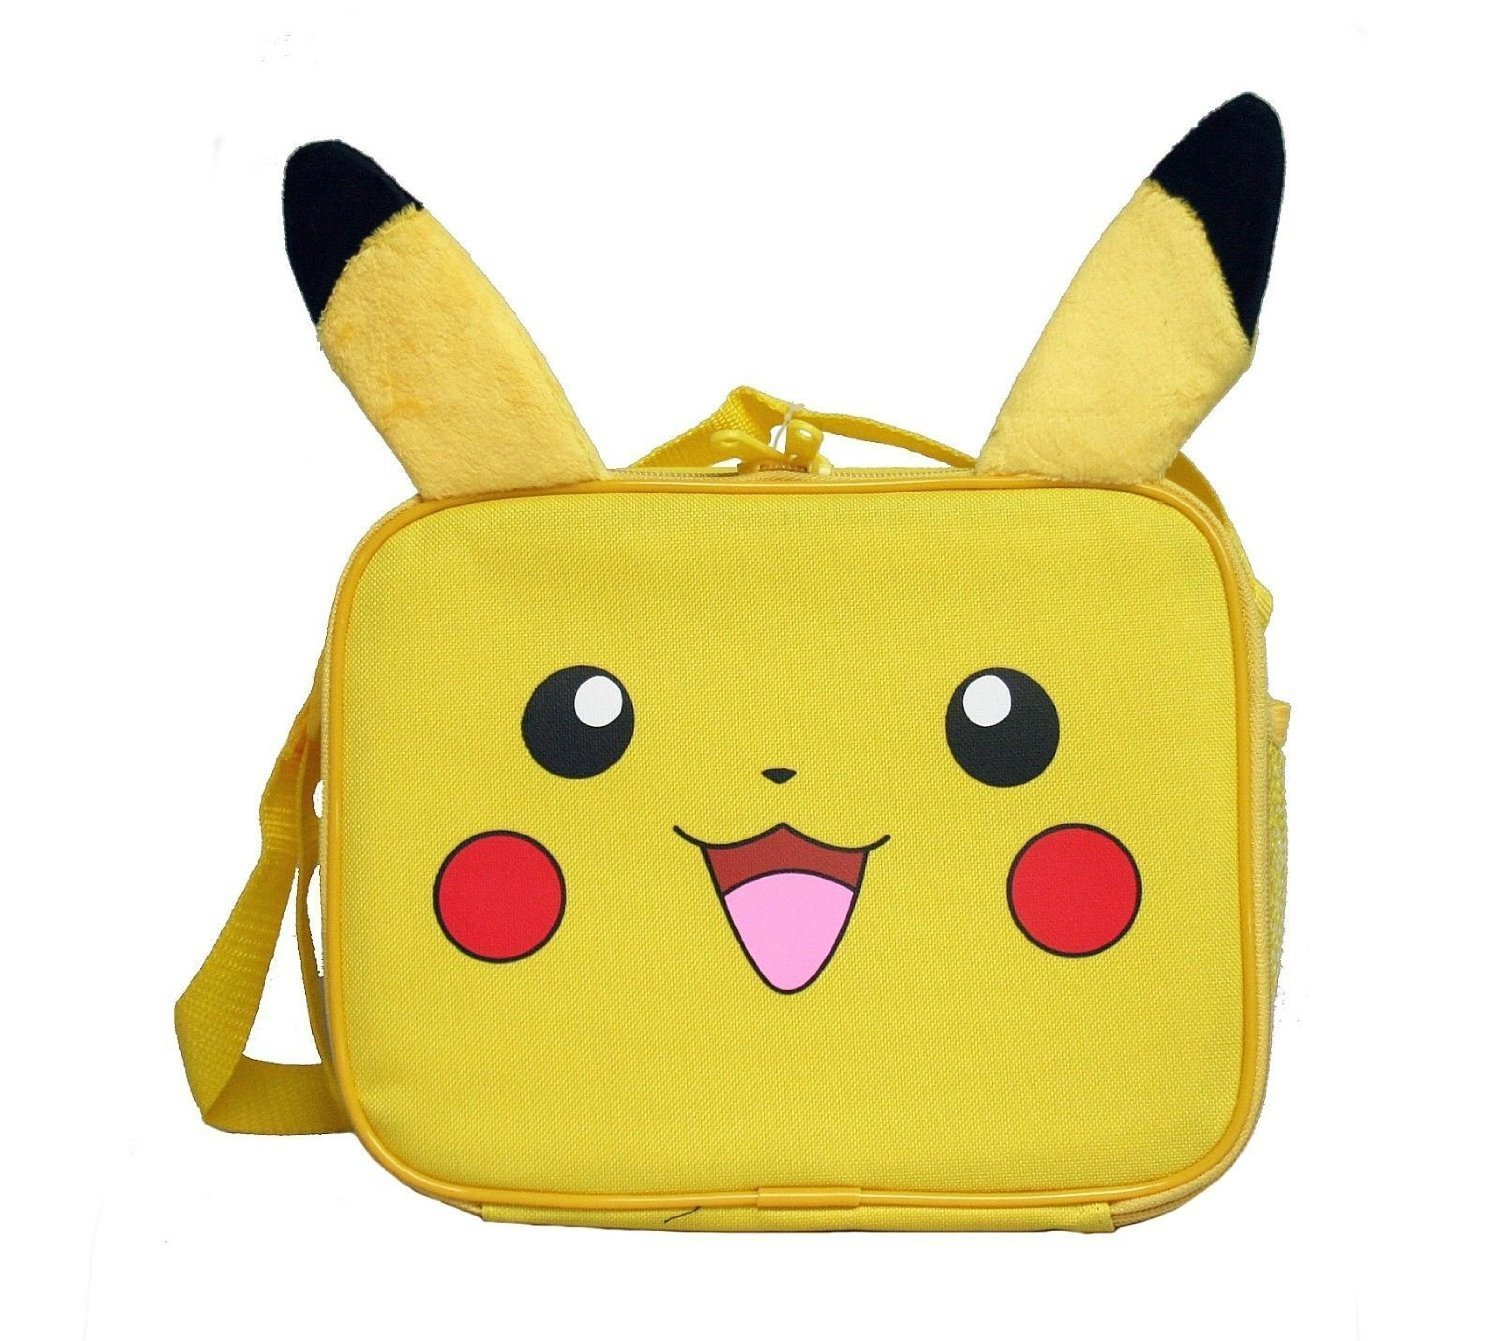 Amazon.com: Pokemon Pikachu Lunch Bag with 3D Plush Ear: Baby